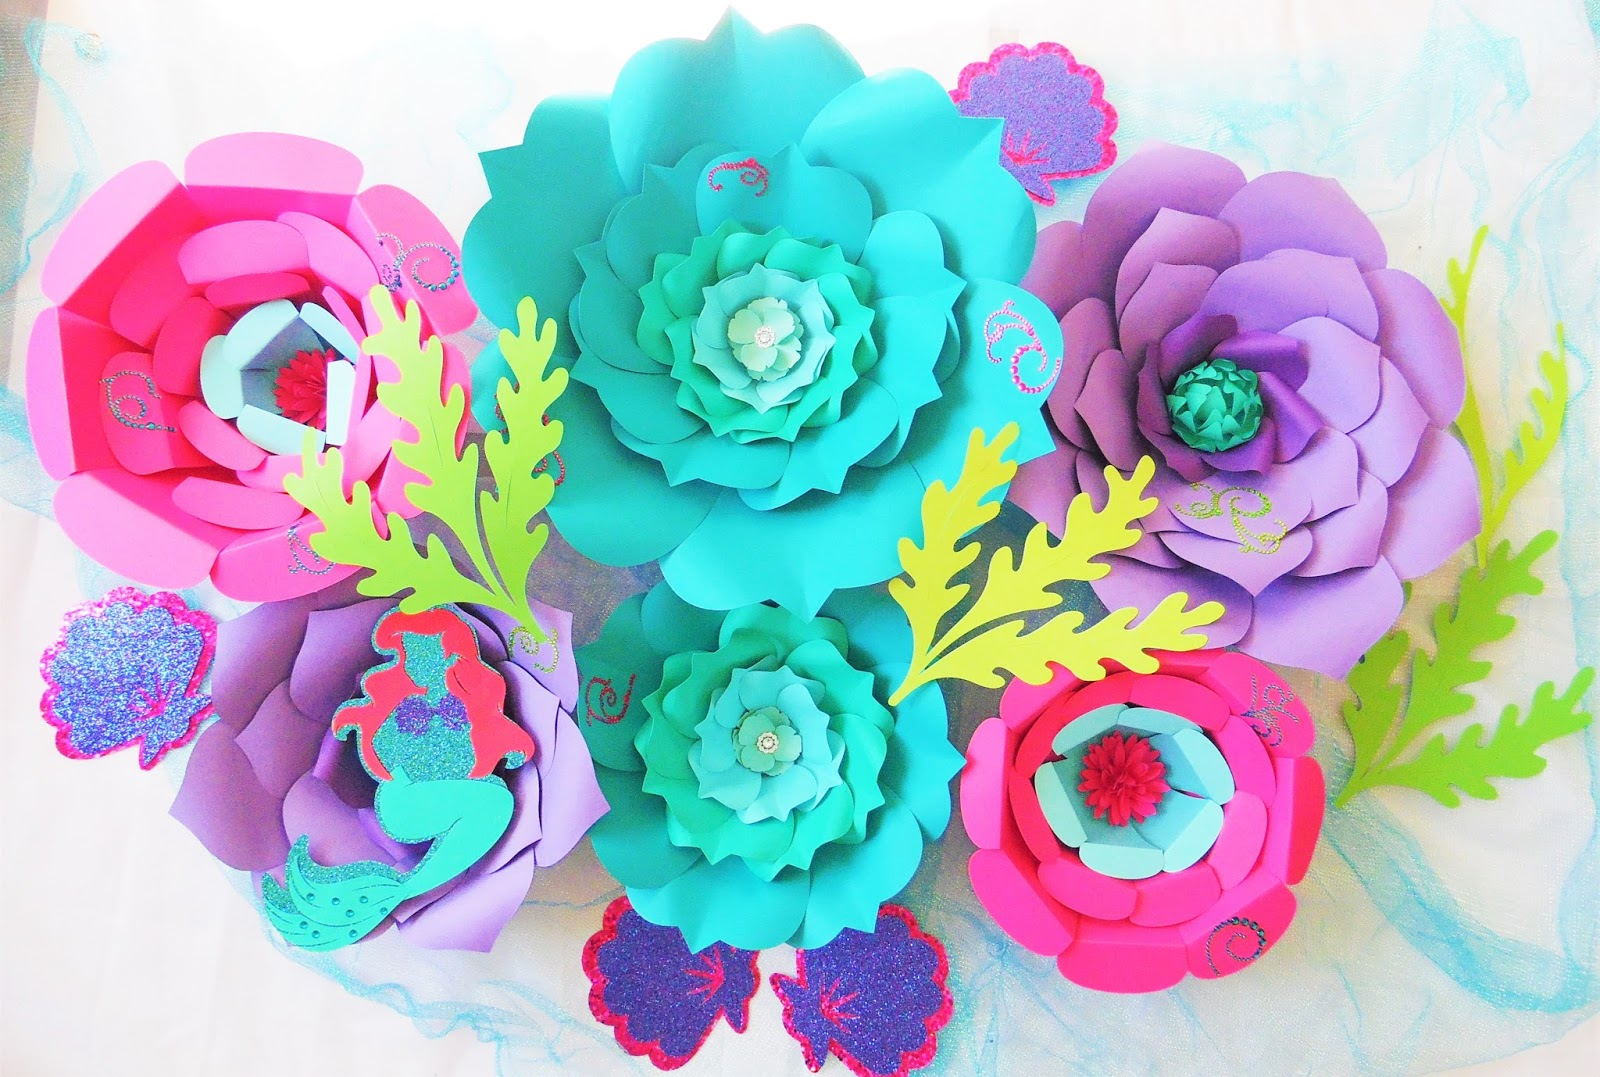 How to create paper flowers gallery flower decoration ideas mamas gone crafty diy paper flowers under the sea ocean theme now that i have so mightylinksfo